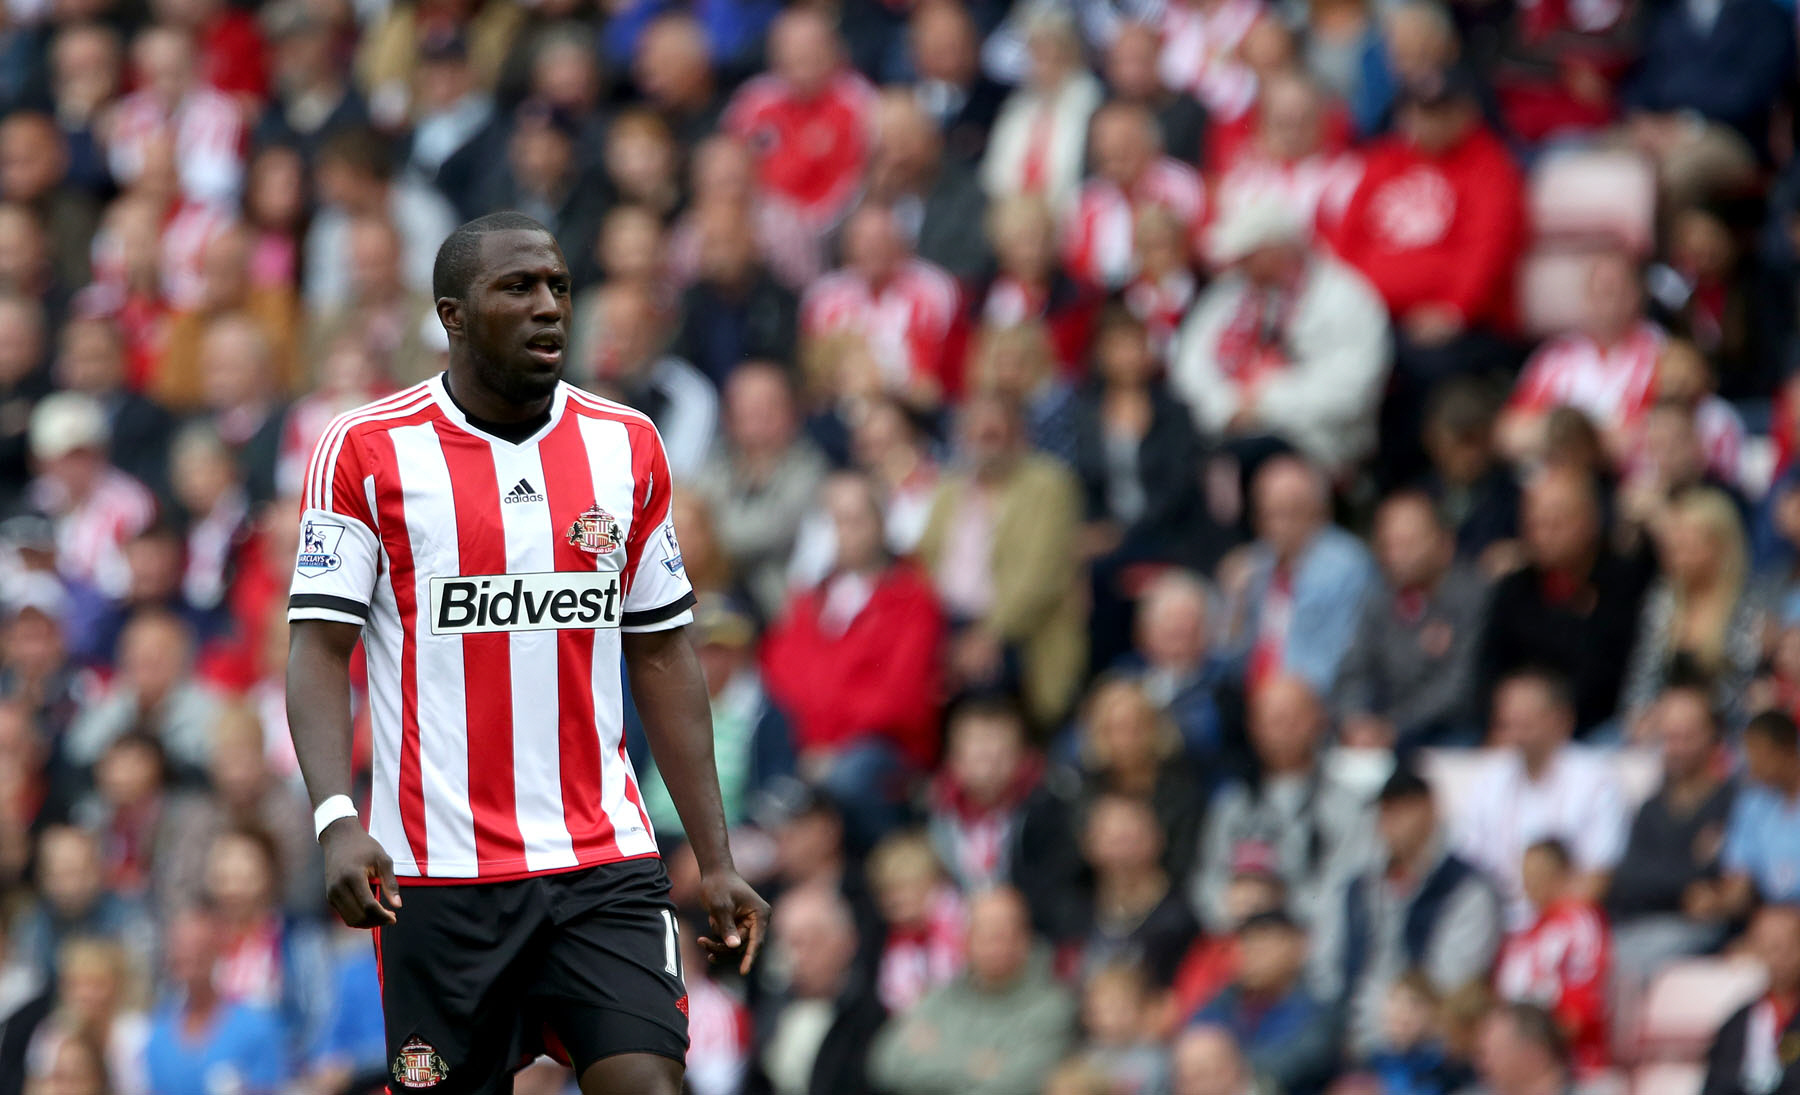 BRAZIL BOUND: Jozy Altidore has been confirm